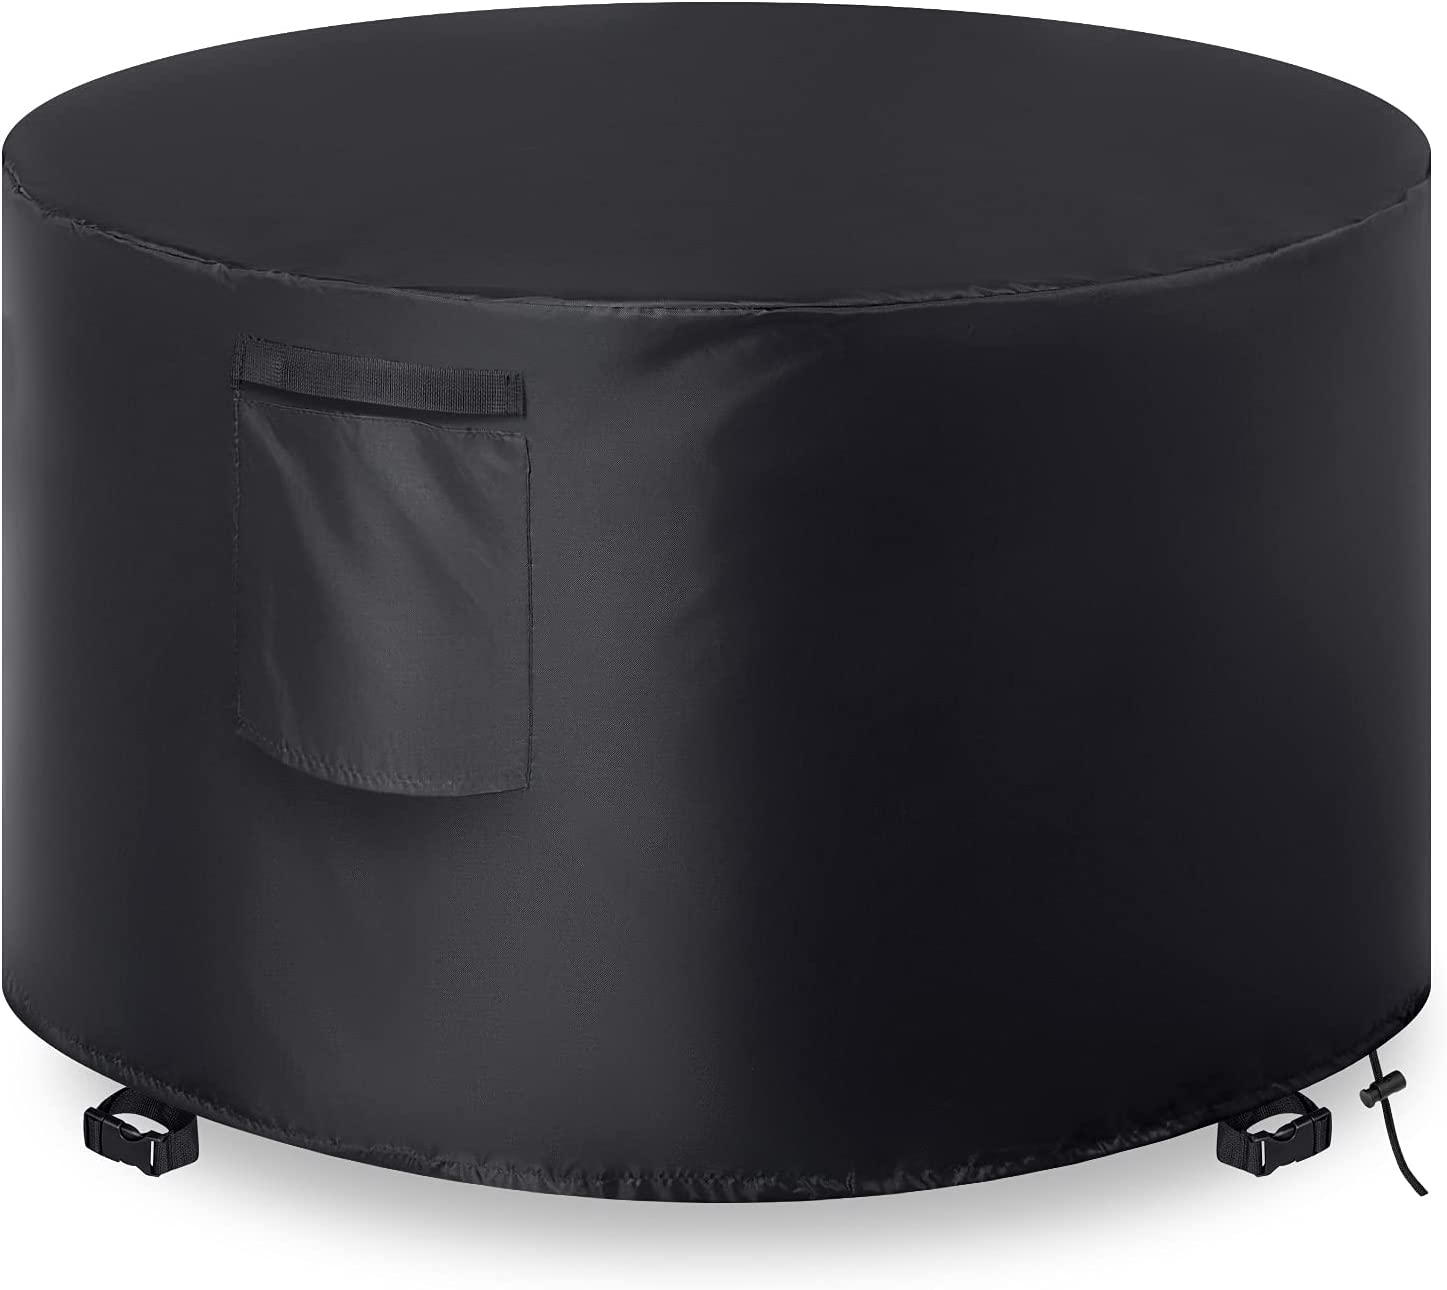 Fire Pit Cover Soldering Round 32 Outdoor Inch Covers Hea High quality new